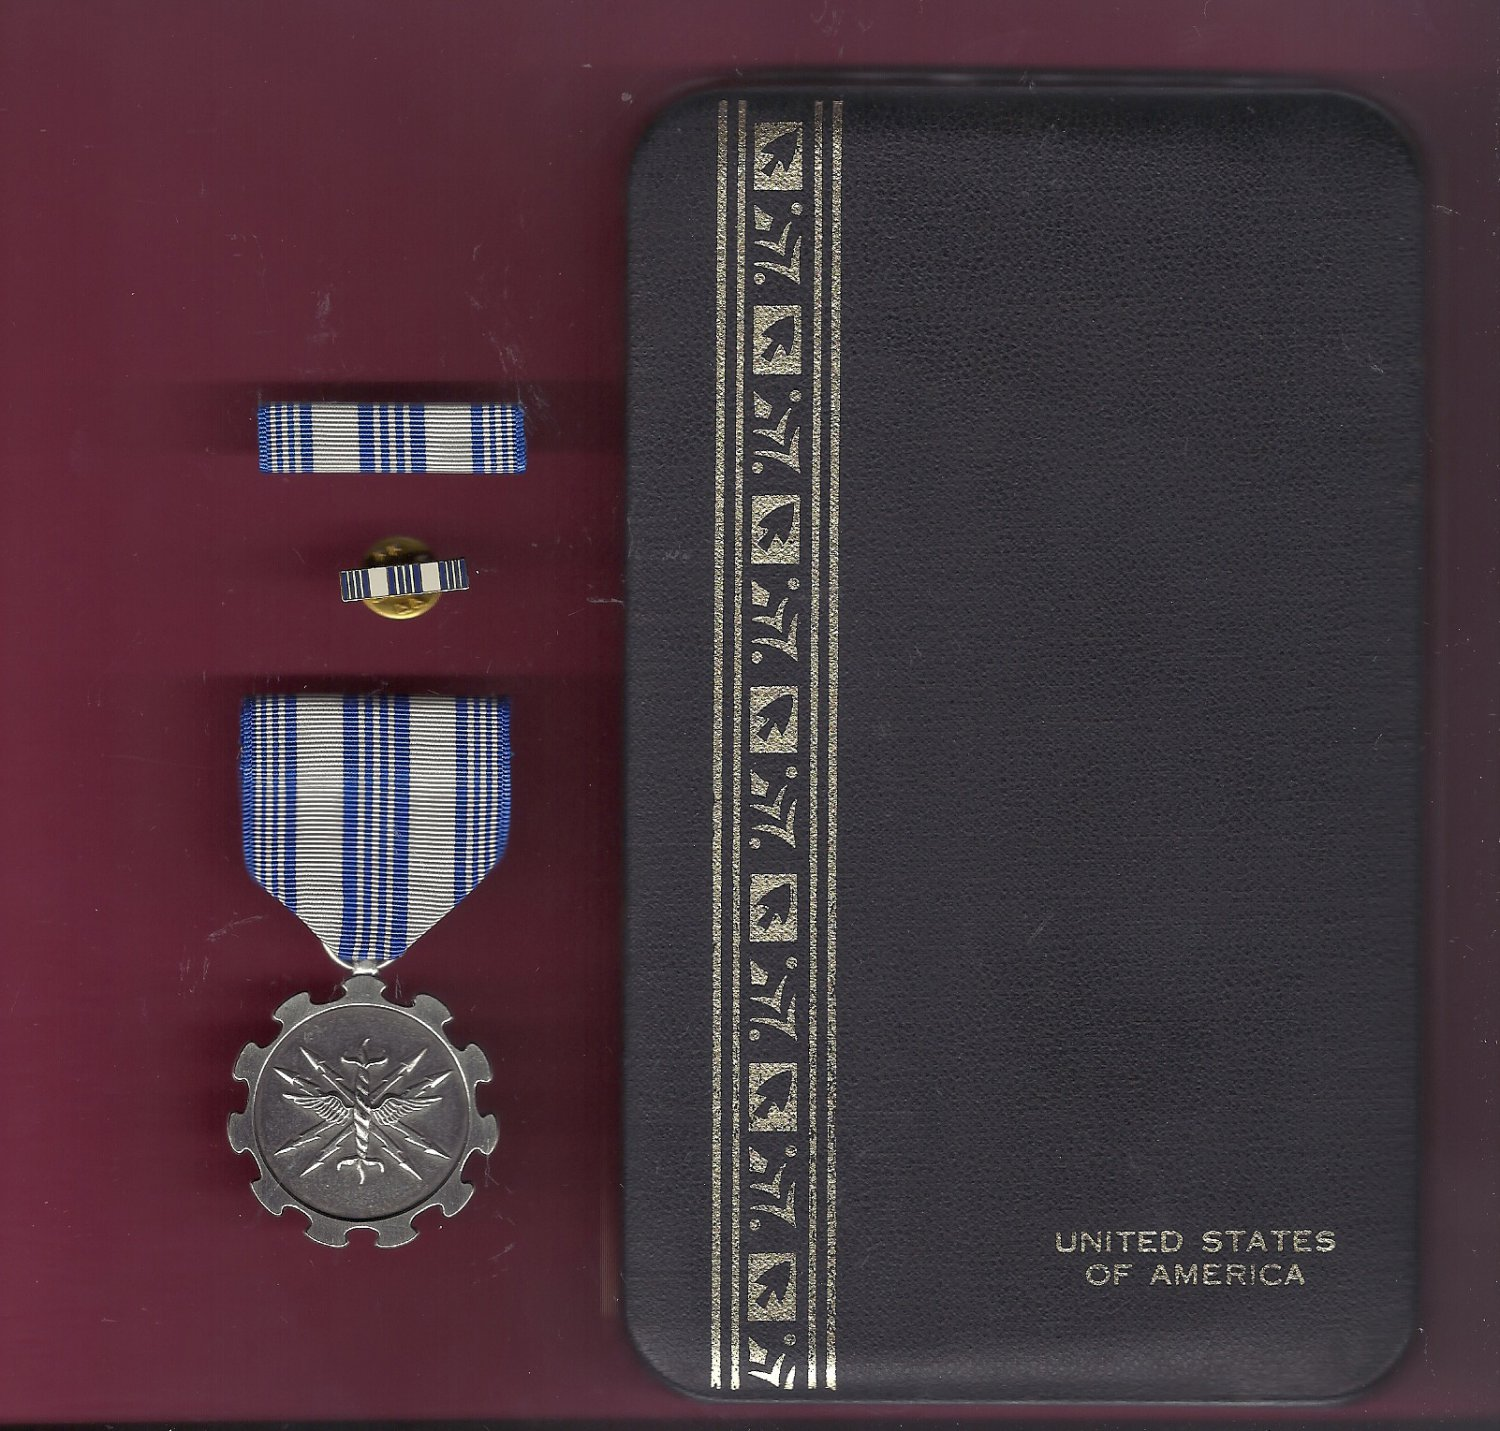 USAF Air Force Achievement medal in case with ribbon bar and lapel pin